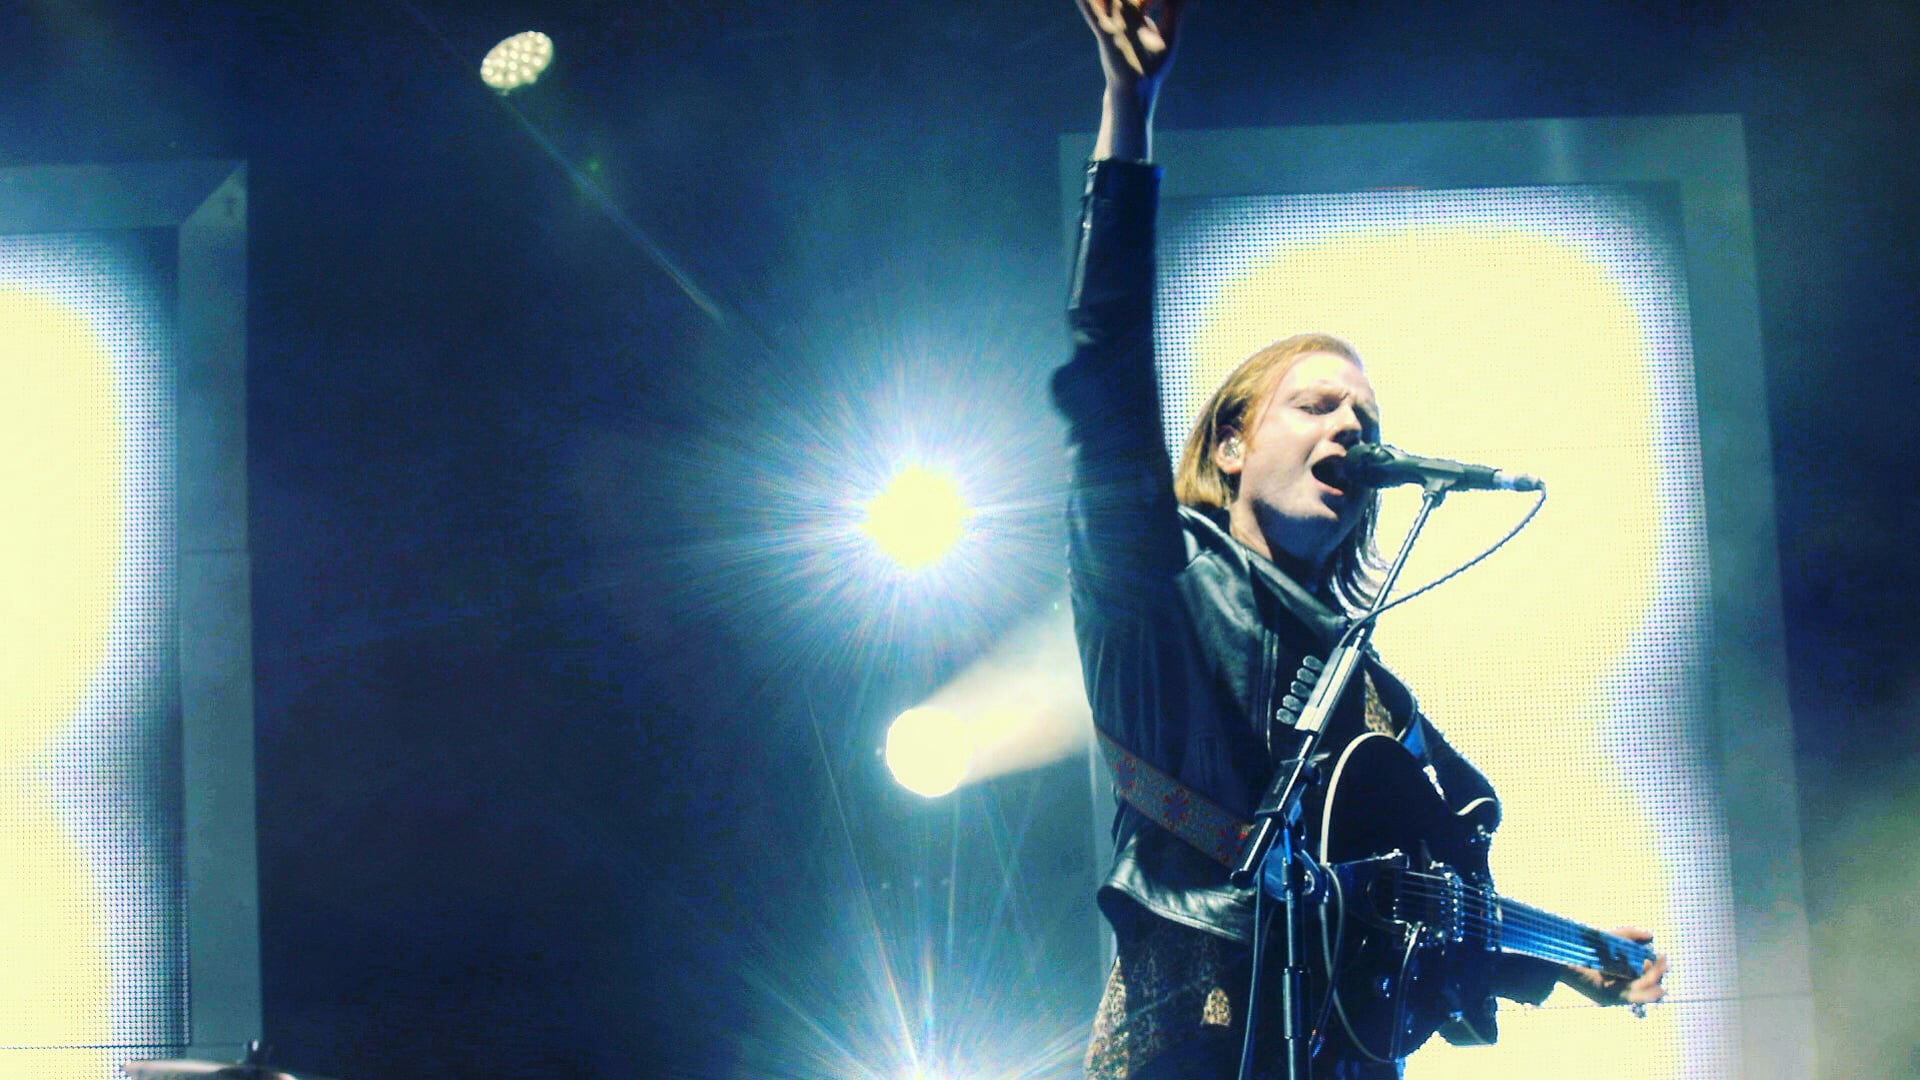 NOS Alive 2016: Walk on stage with Two Door Cinema Club